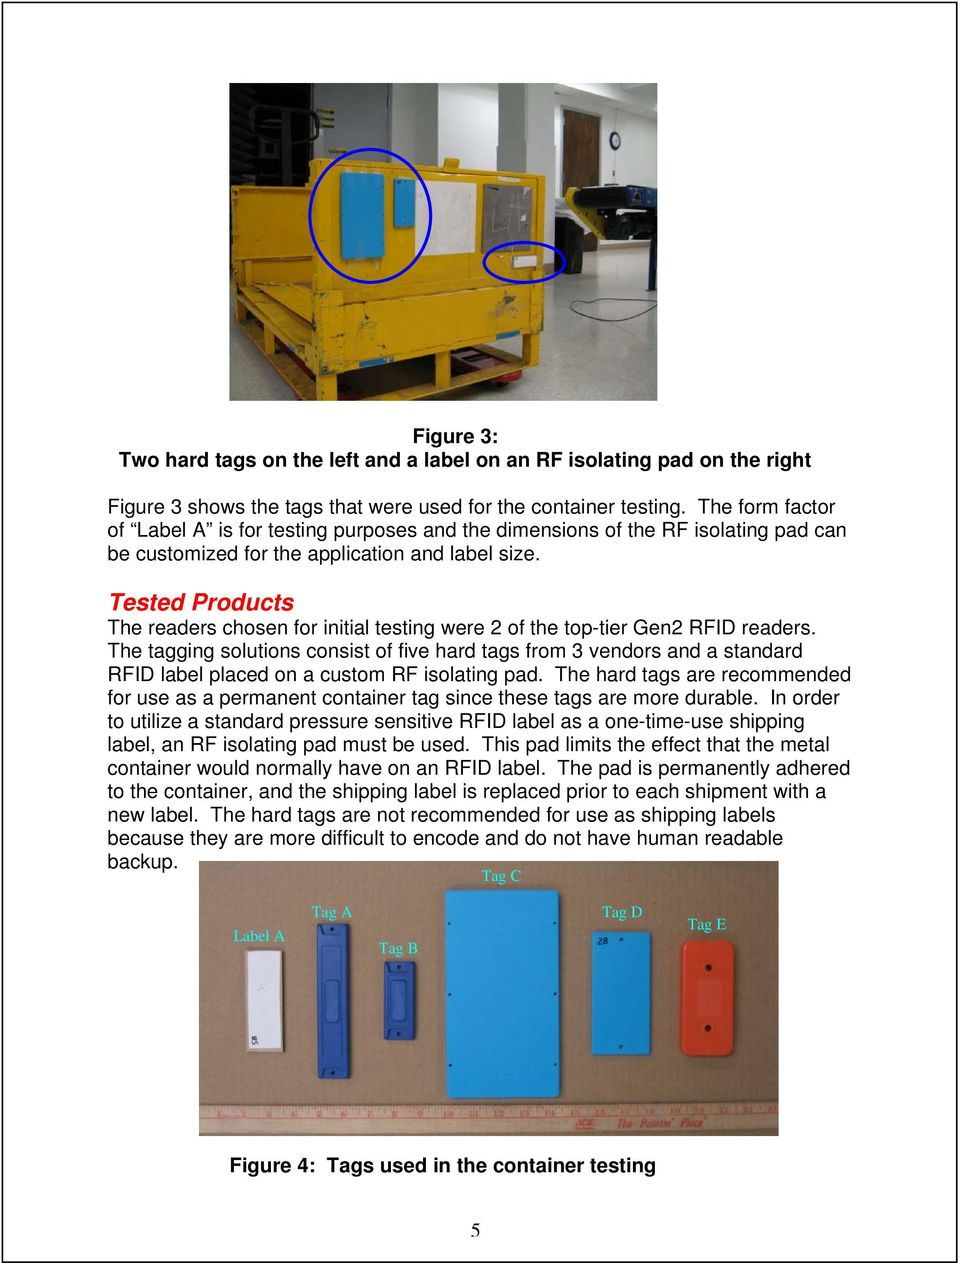 Tested Products The readers chosen for initial testing were 2 of the top-tier Gen2 RFID readers.